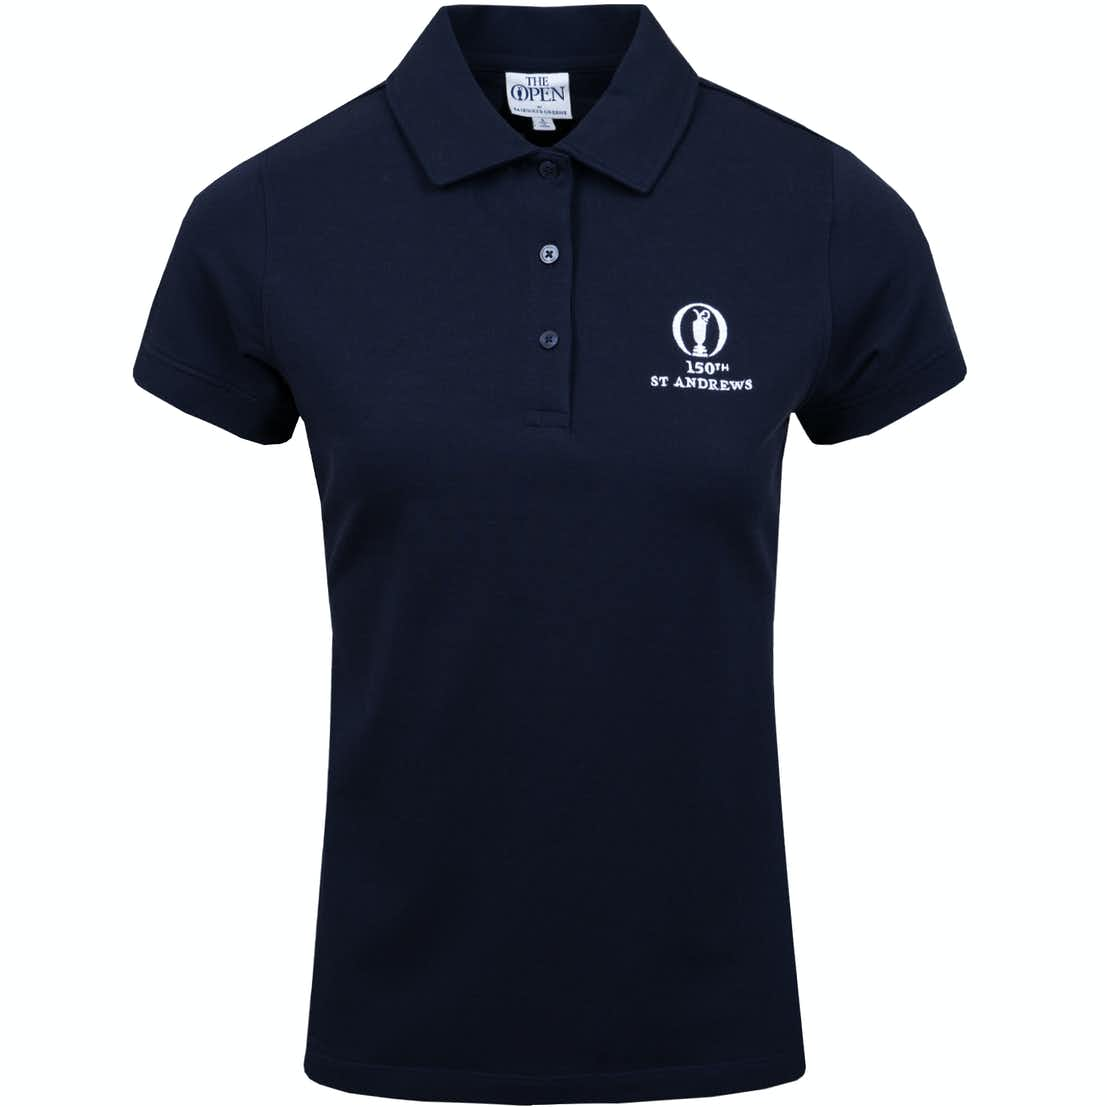 150th St Andrews Plain Polo Shirt - Blue